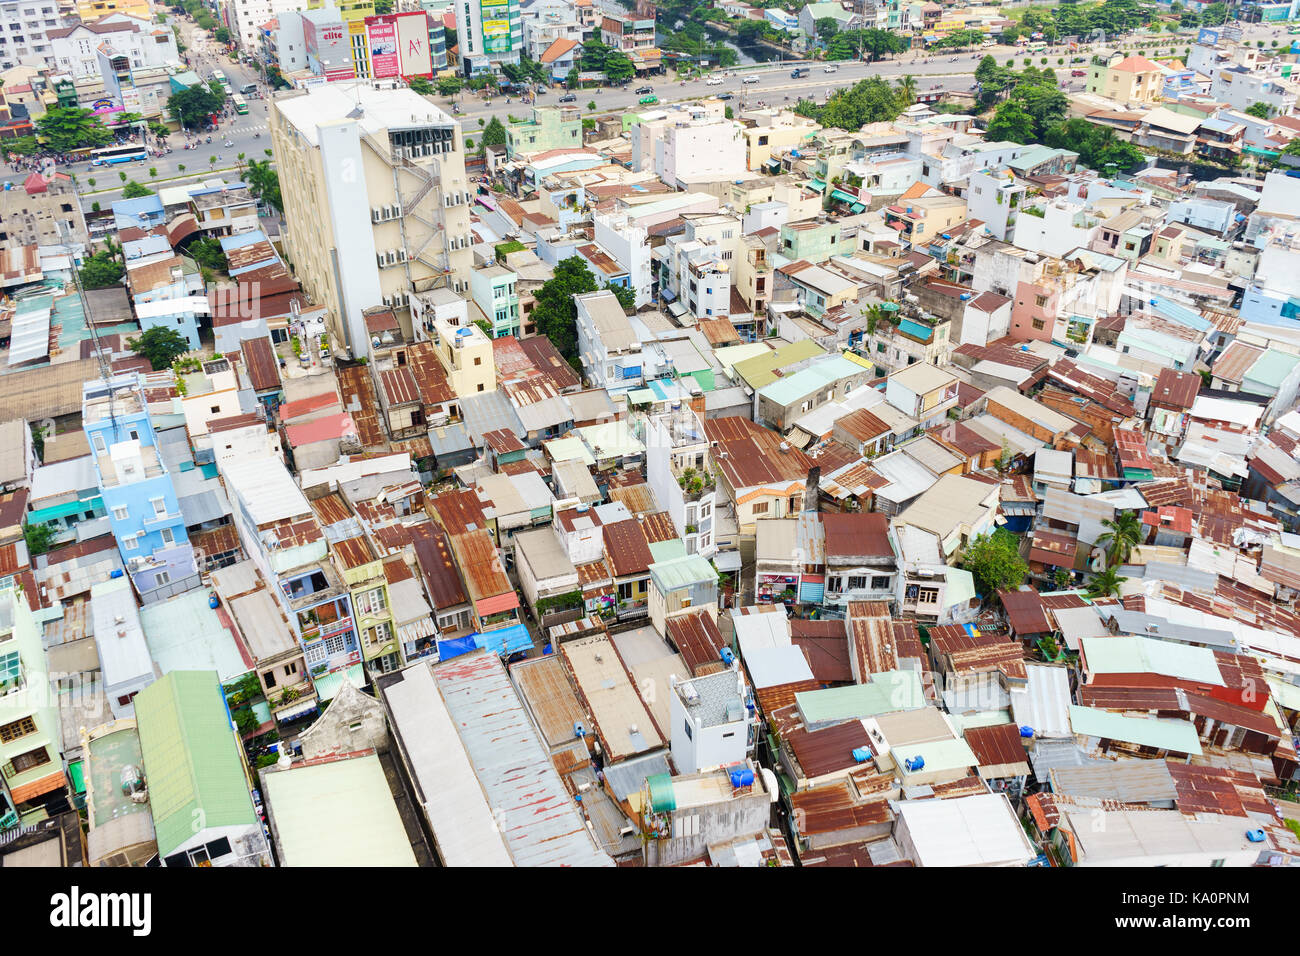 Ho Chi Minh city (or Saigon) skyline with colorful house, Vietnam. Saigon is the biggest city and economic center Stock Photo